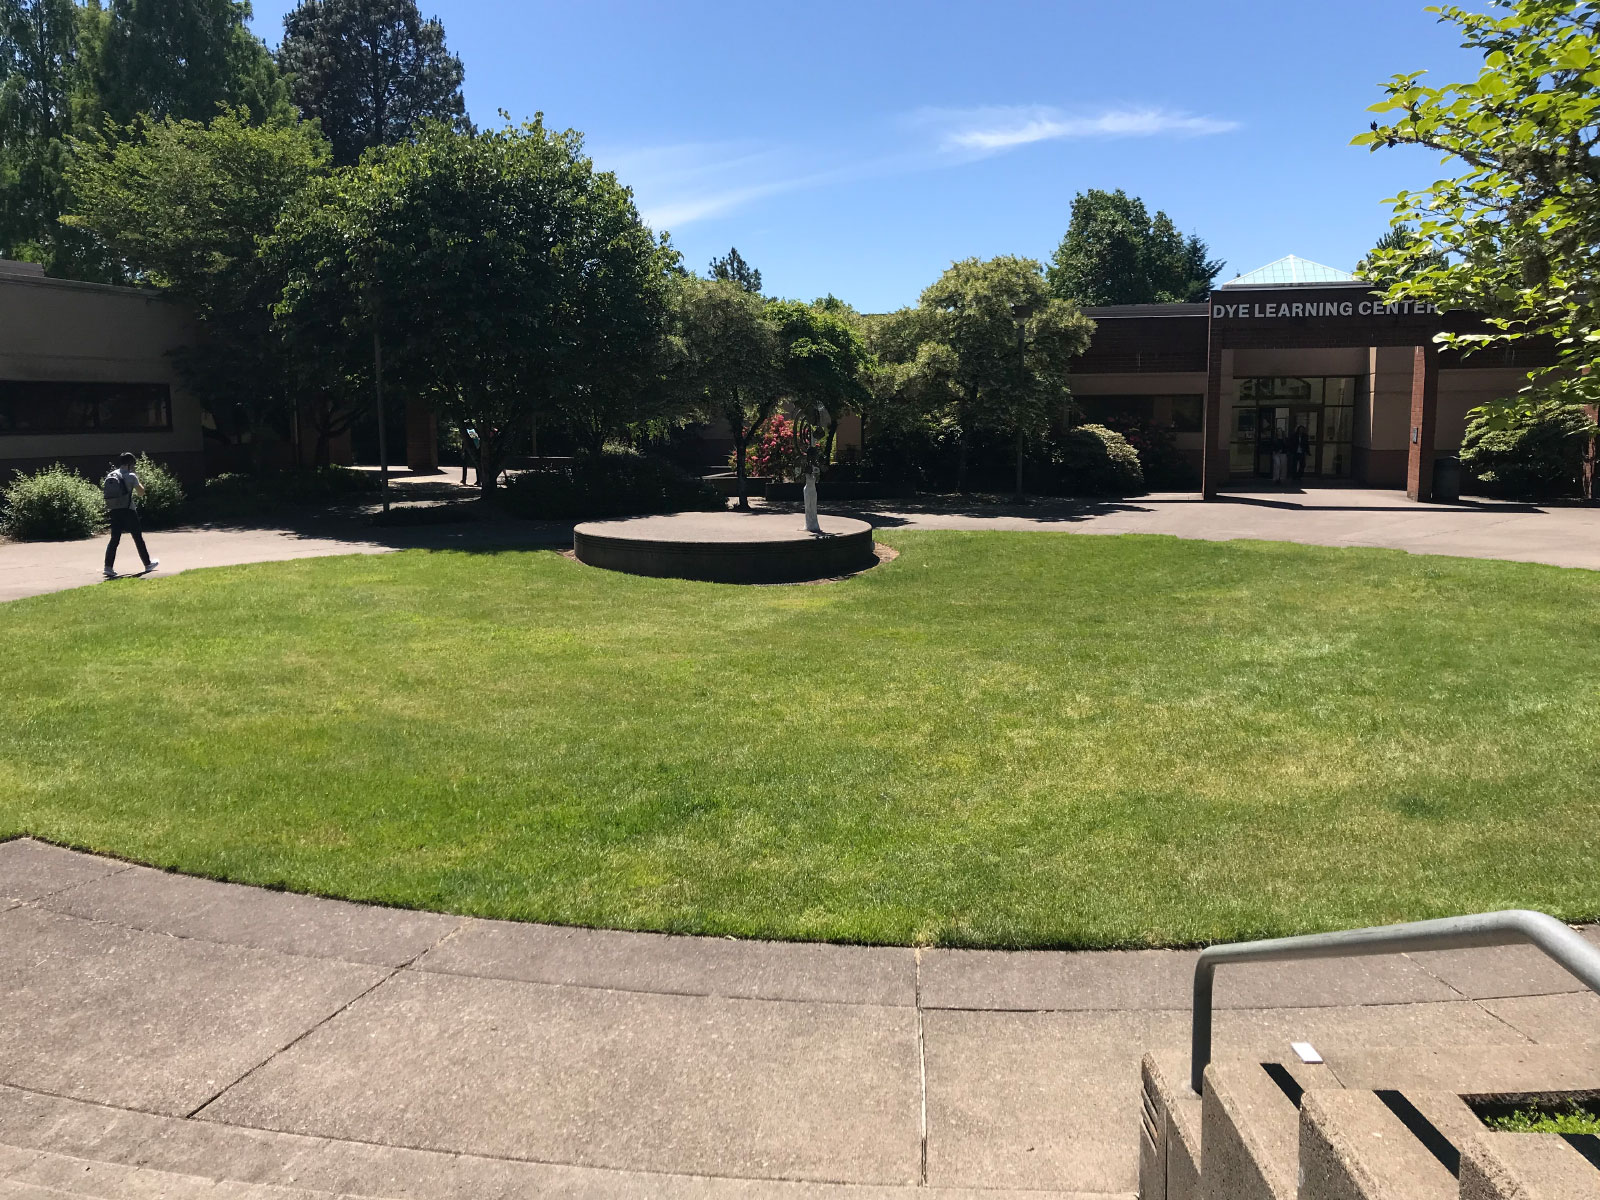 The grassy seating area outside the Dye Learning Center and Gregory Forum at the Oregon City campus